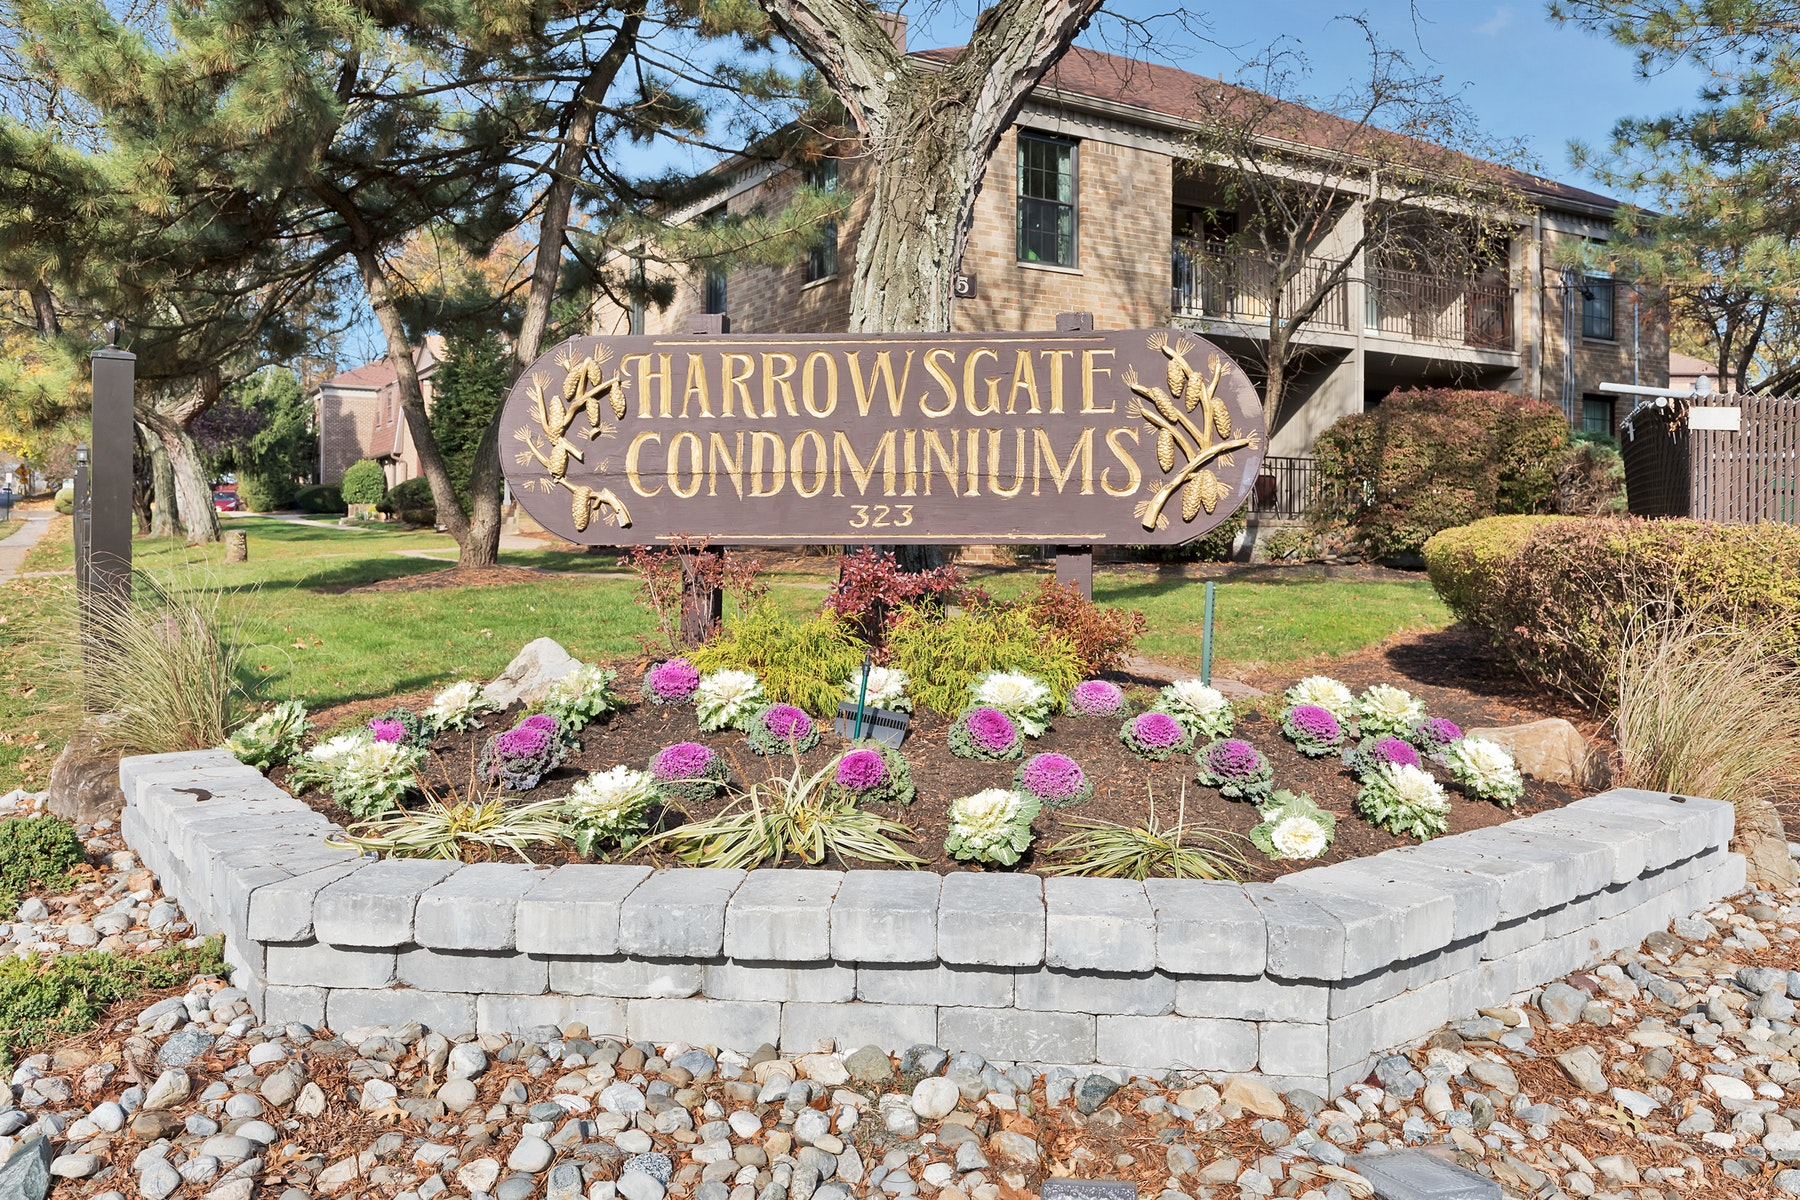 Condominiums for Sale at Welcome to Harrowsgate! 323 Gill Lane Unit 5-H Woodbridge, New Jersey 08830 United States